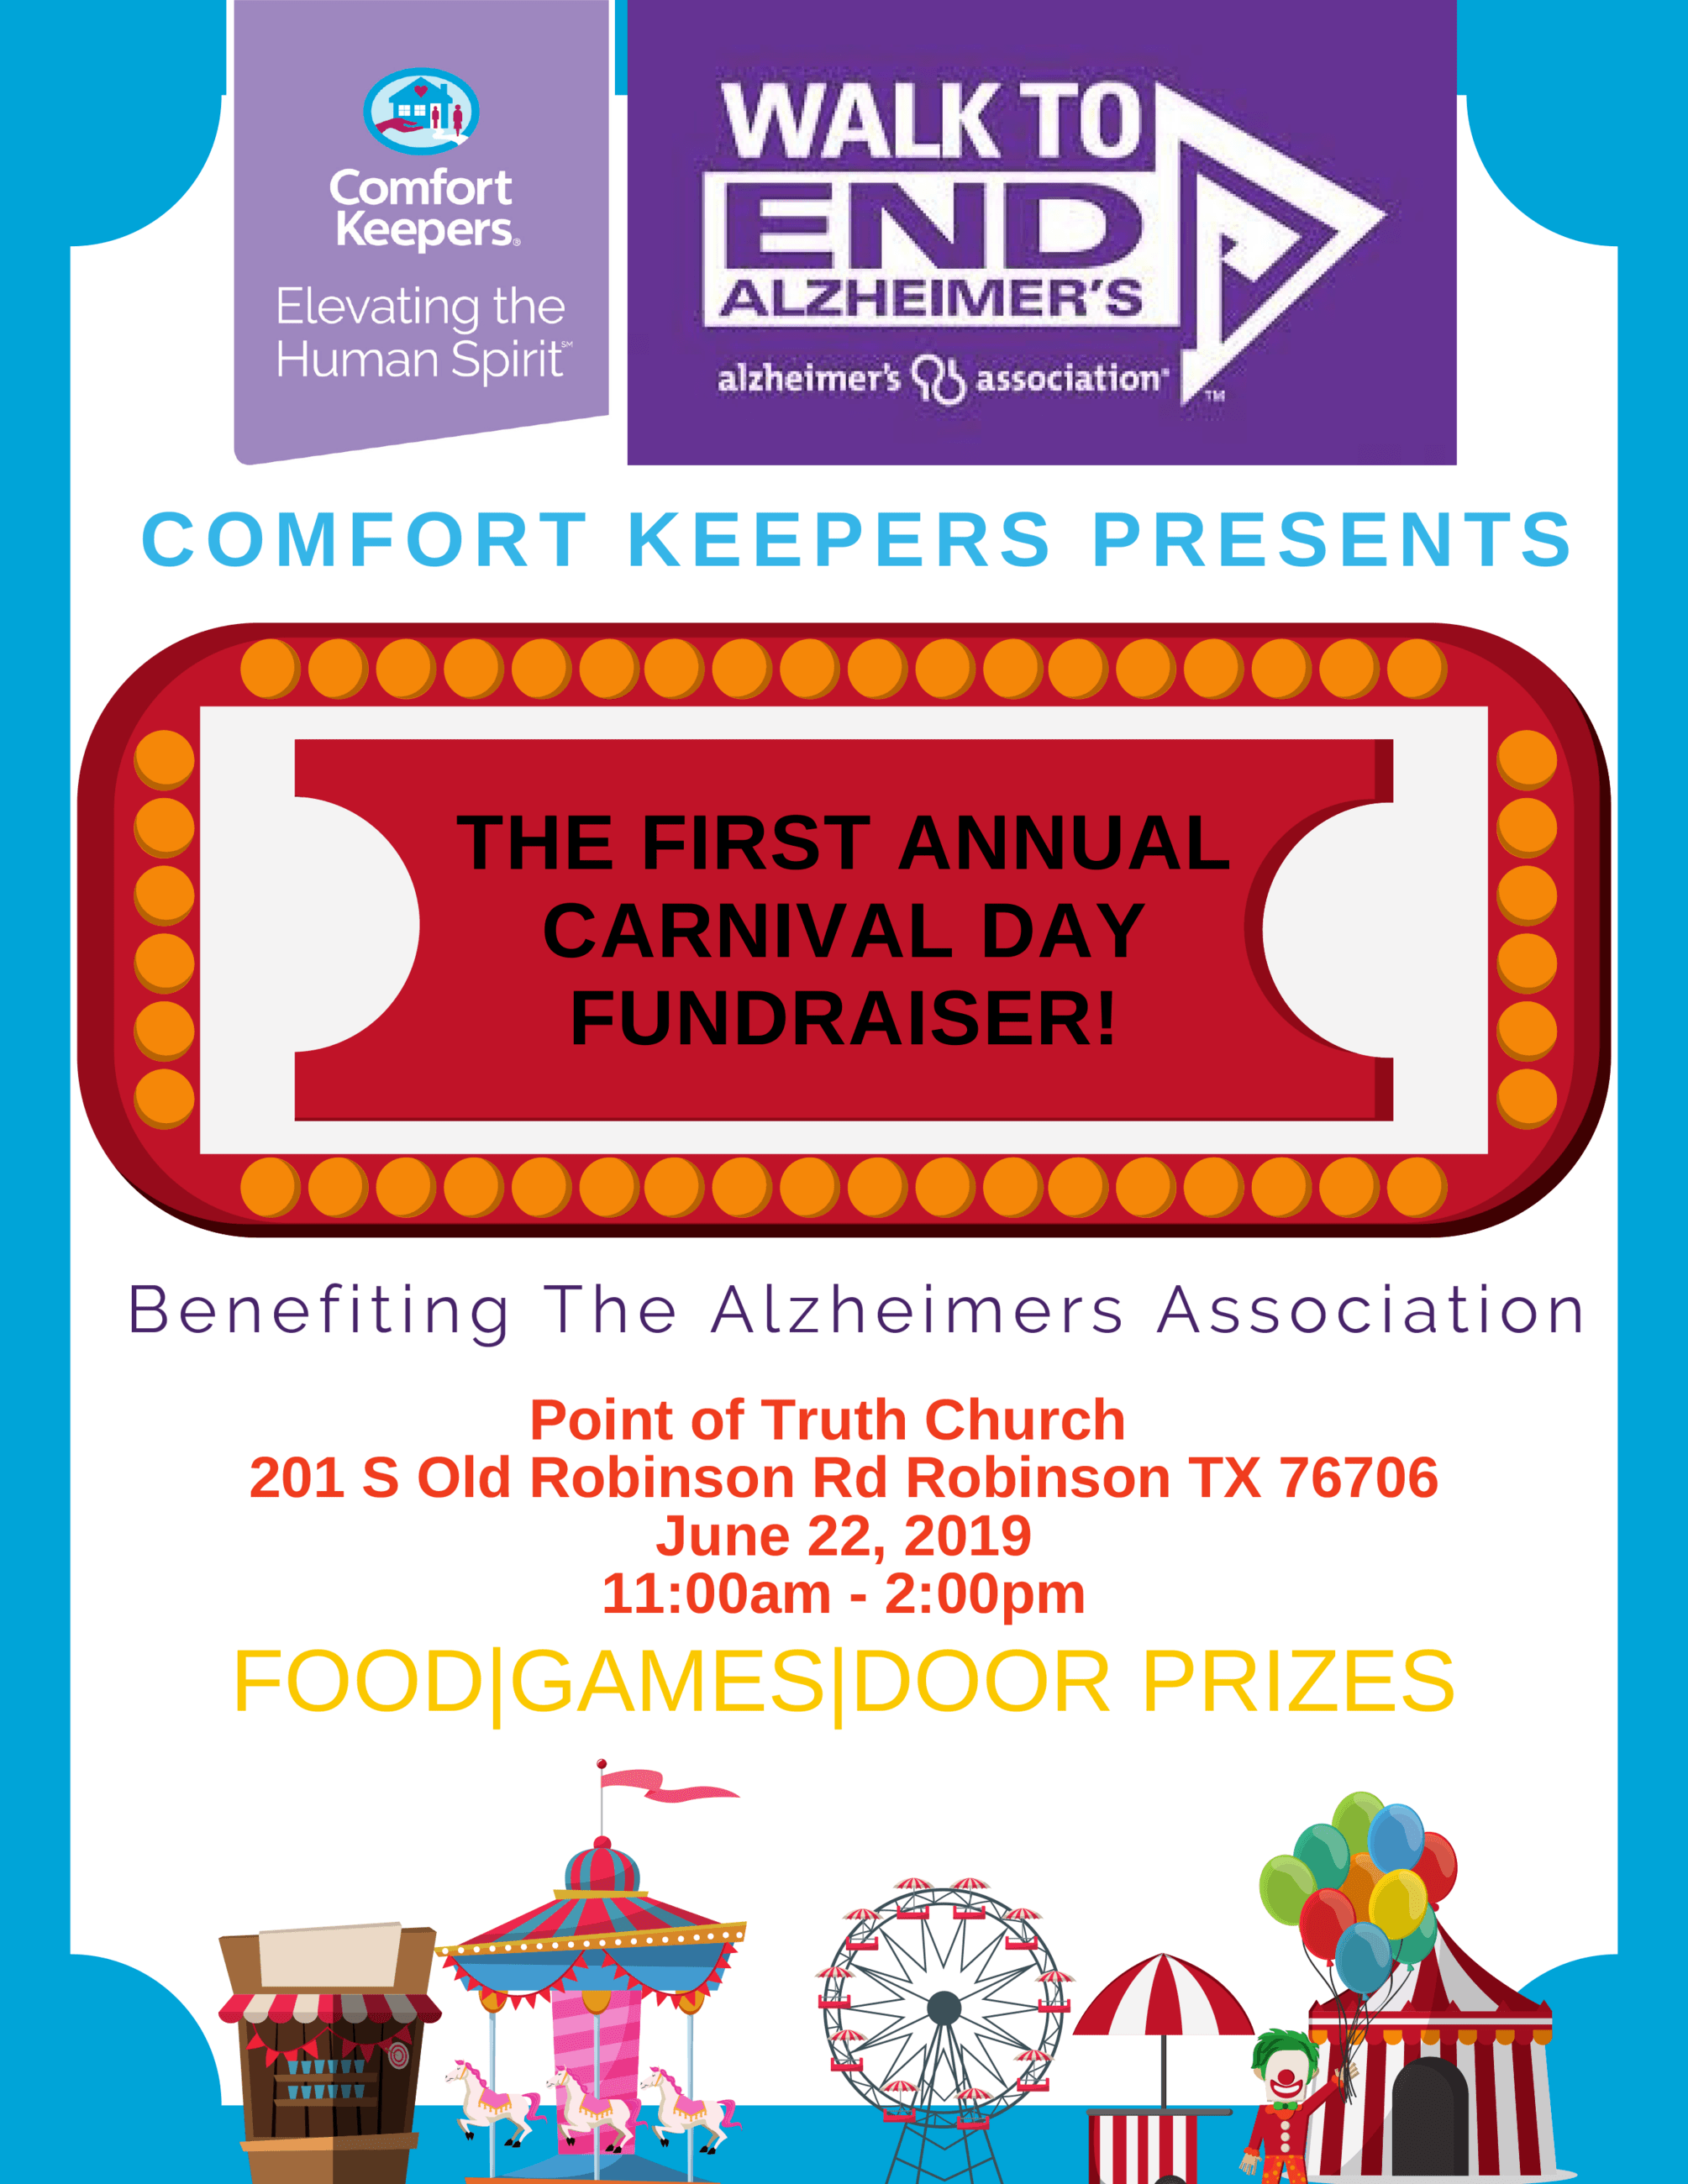 Walk to End Alzheimer's; Comfort Keepers Presents: The First Annual Carnival Day Fundraiser benef